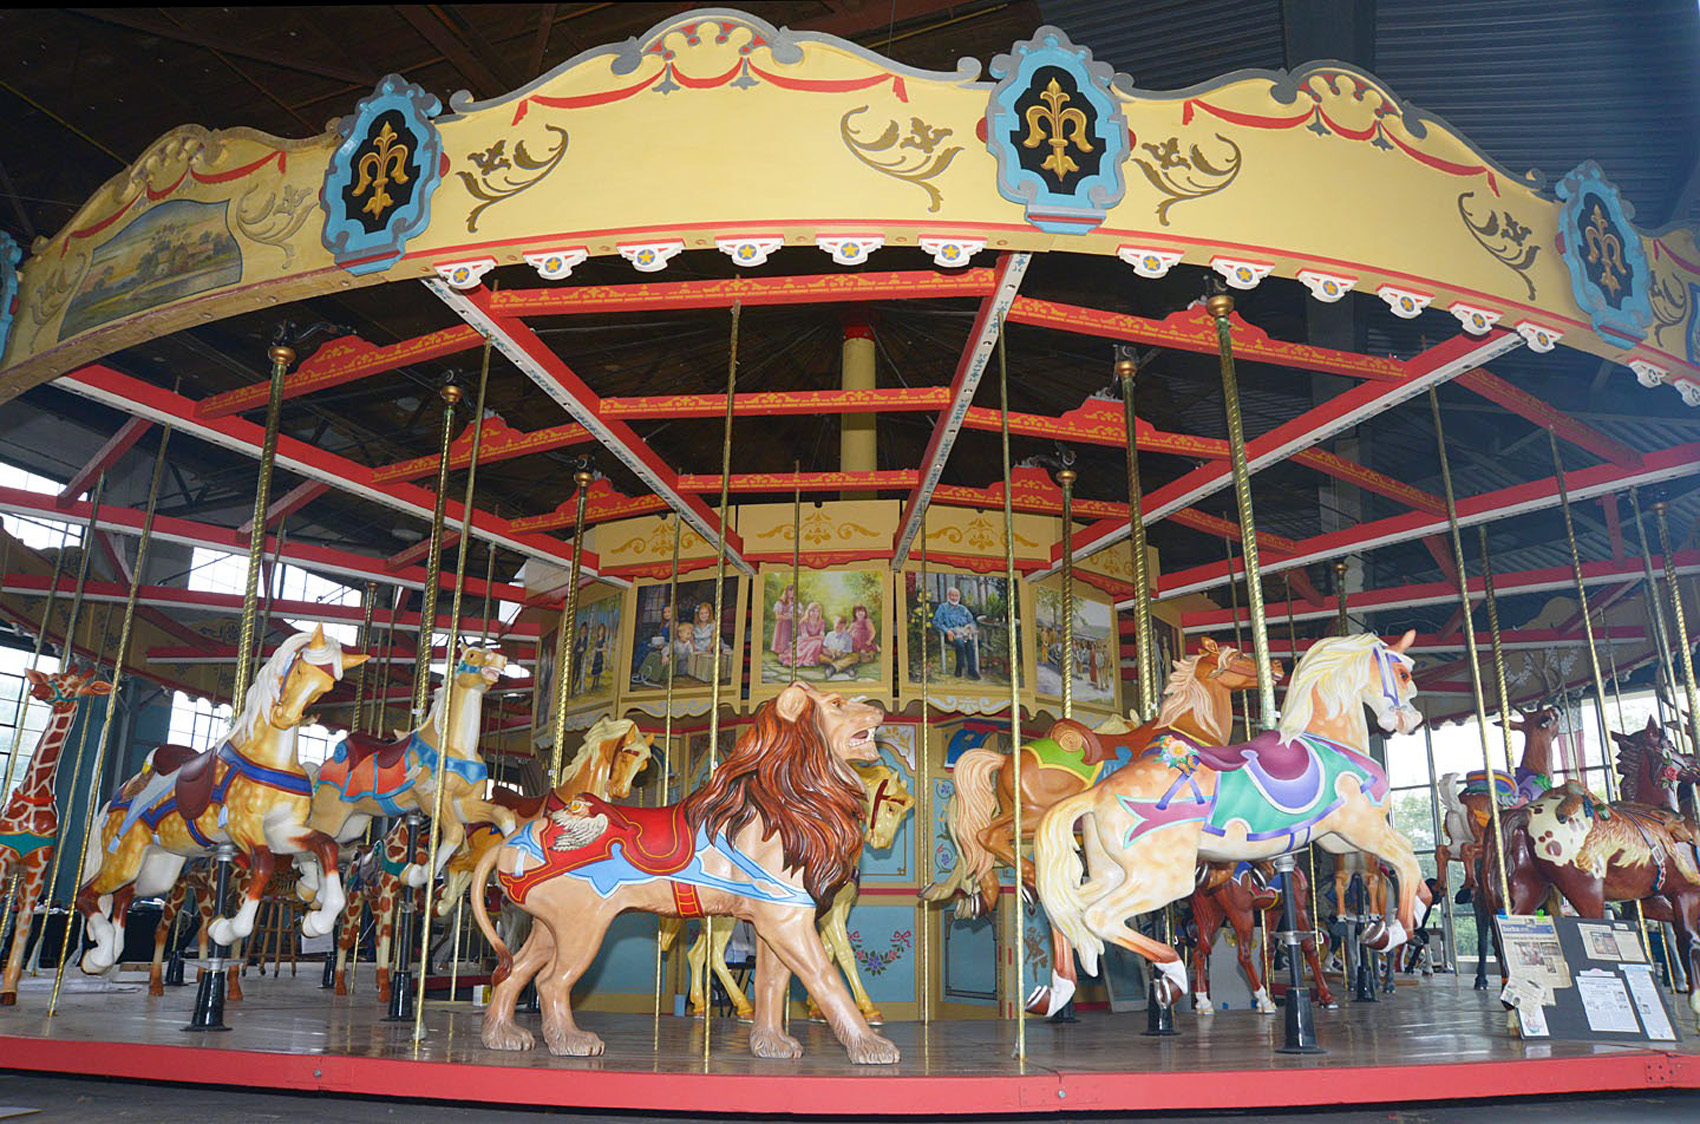 The-Carousel-at-Pottstown-full-wide